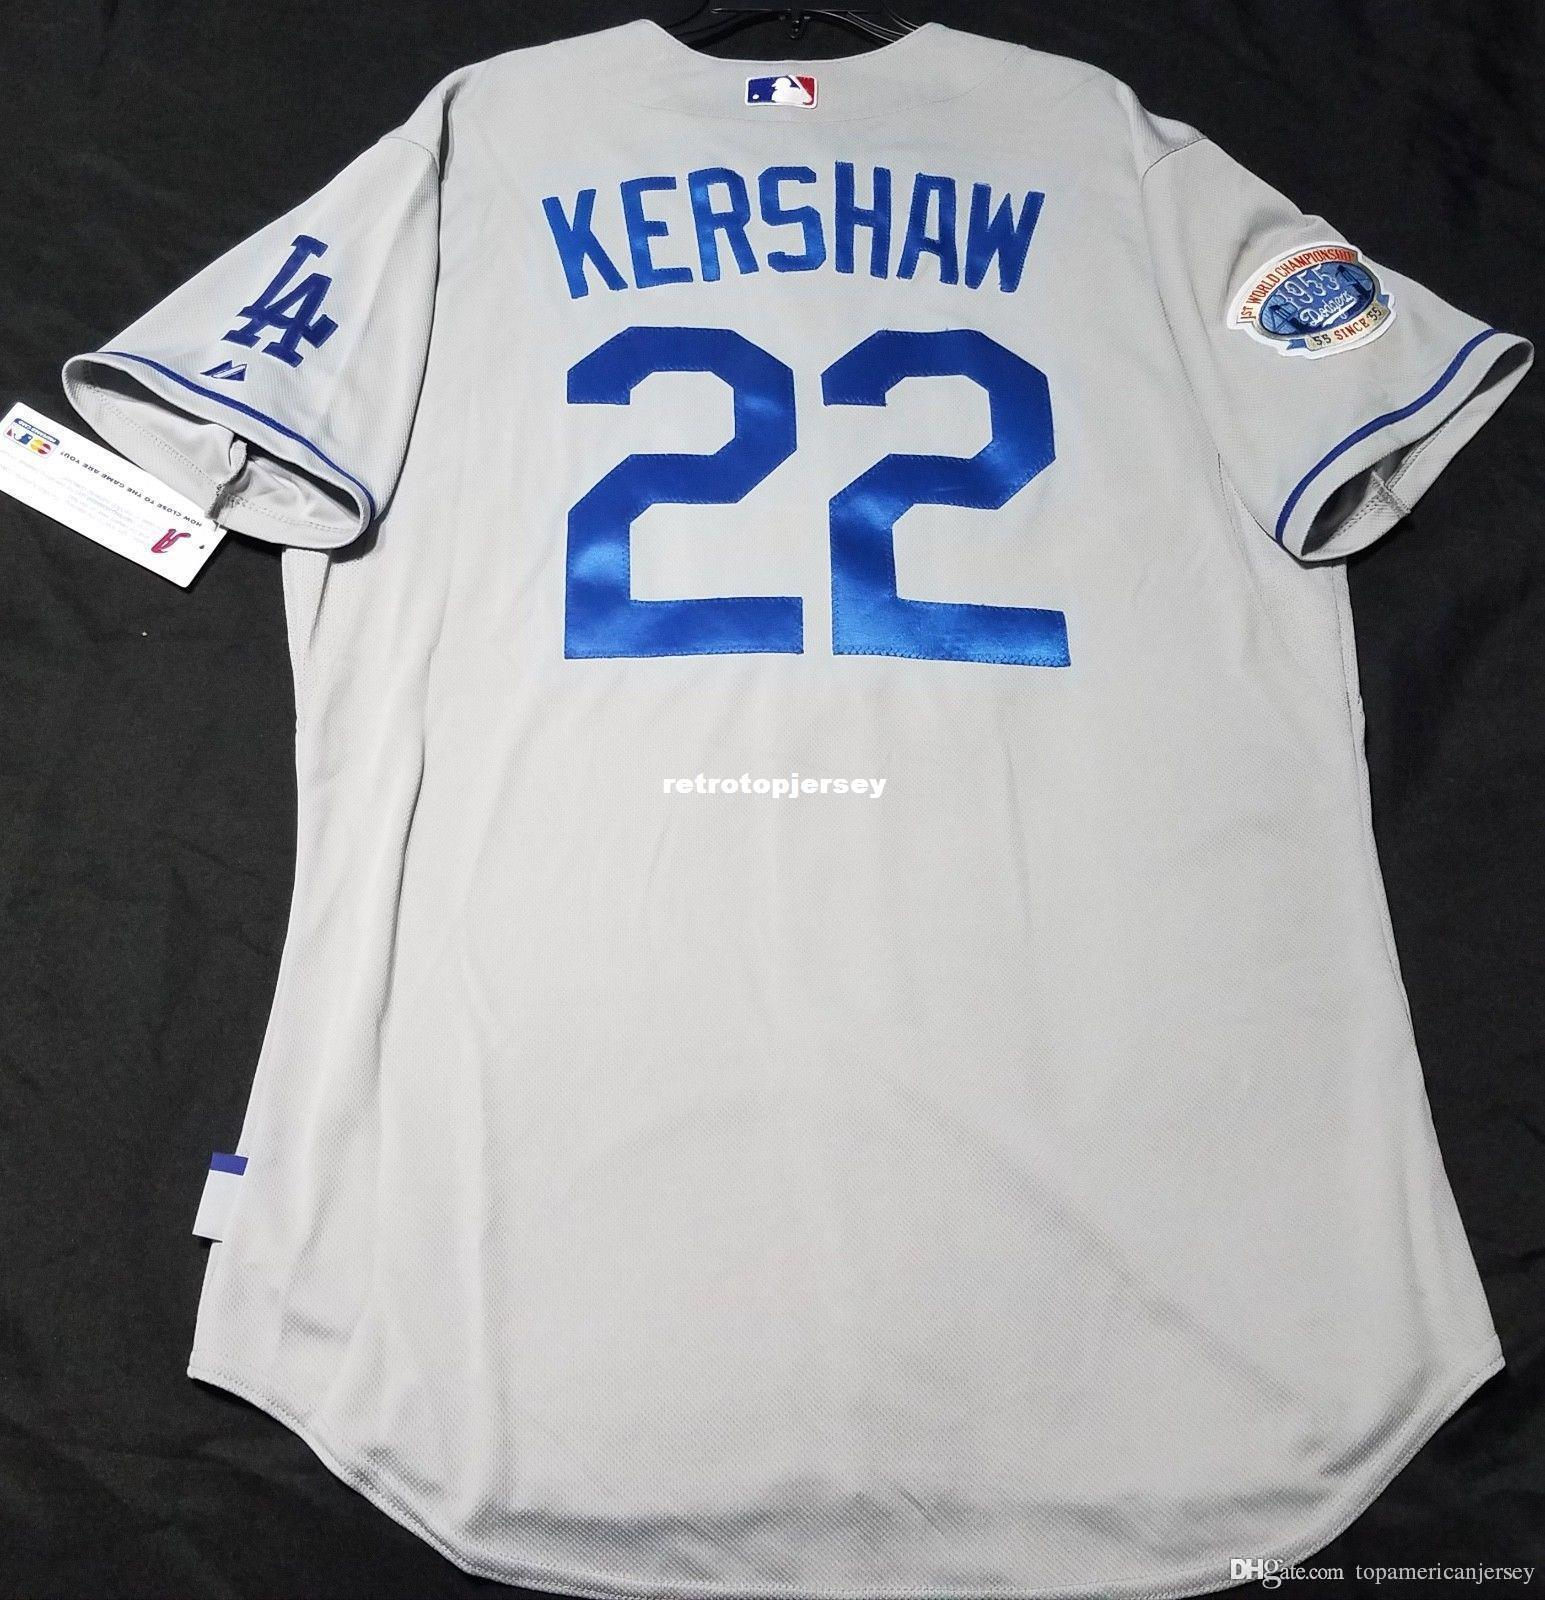 Cheap MAJESTIC LOS ANGELES # 22 Clayton Kershaw freddo Jersey Base Grey Mens cucito all'ingrosso grande e grosso formato XS-6XL pullover di baseball